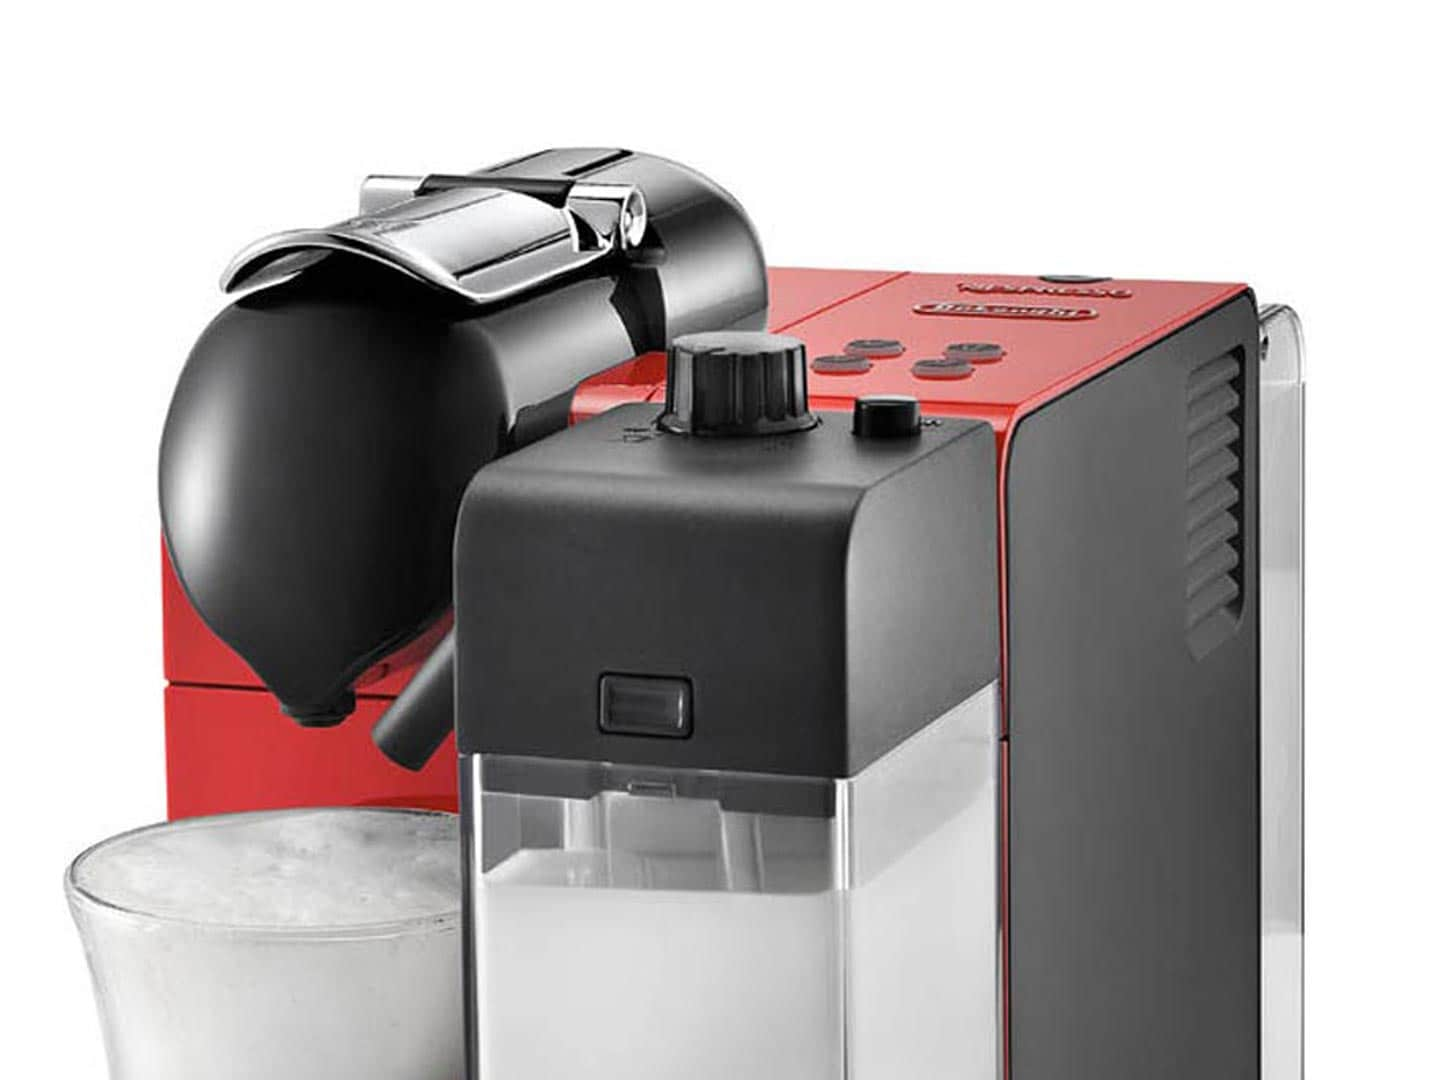 Nespresso Lattissima Plus Latte, Cappuccino, and Espresso Machine by De'Longhi, Red  - EN 520.R